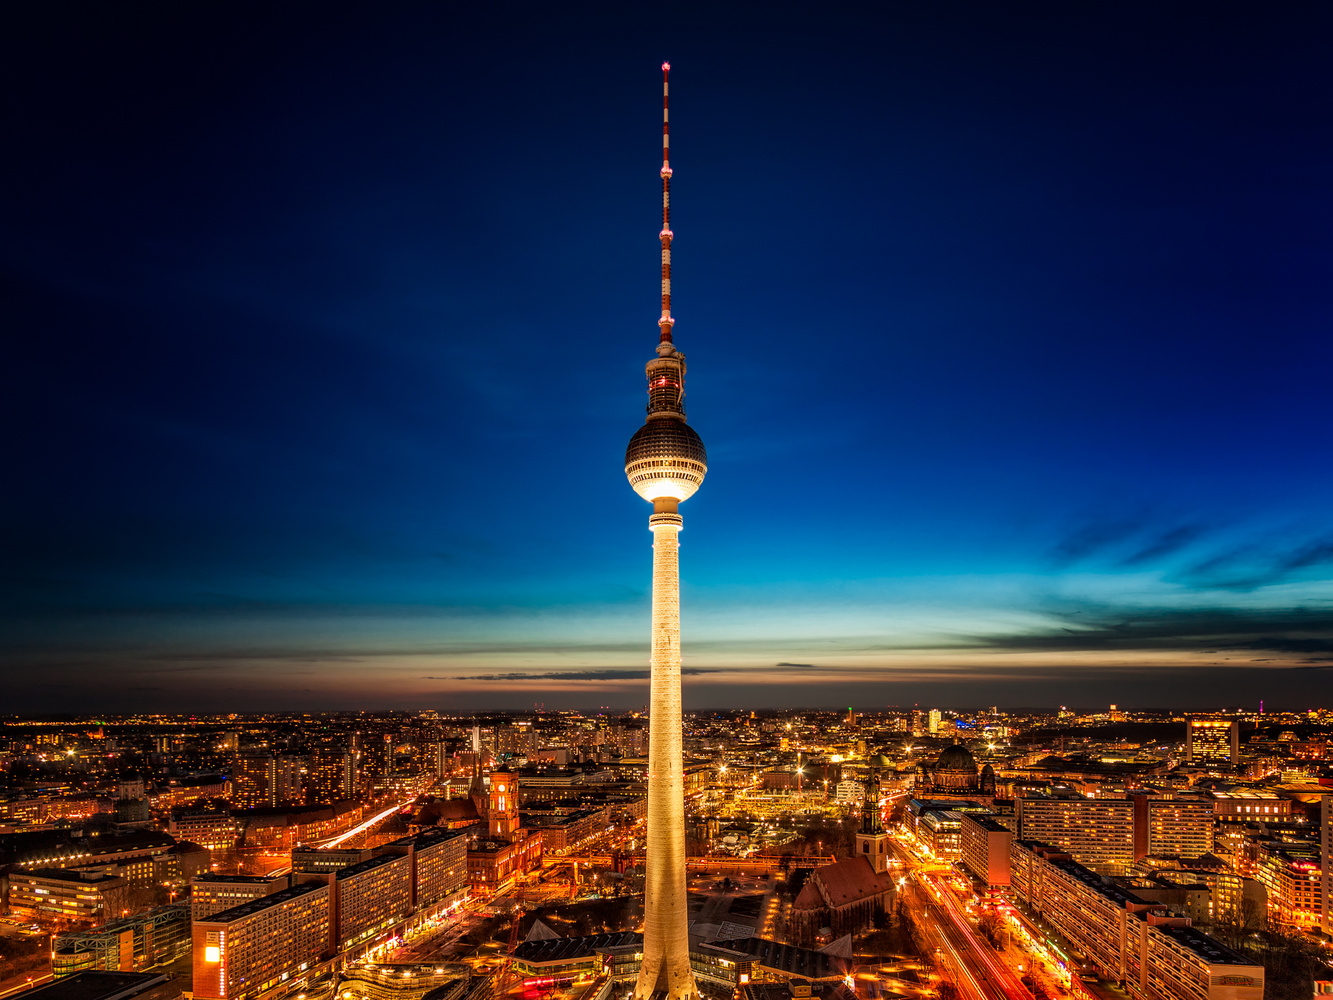 TV Tower at Night from Park Inn by Radisson | Berlin, Germany by Nico Trinkhaus